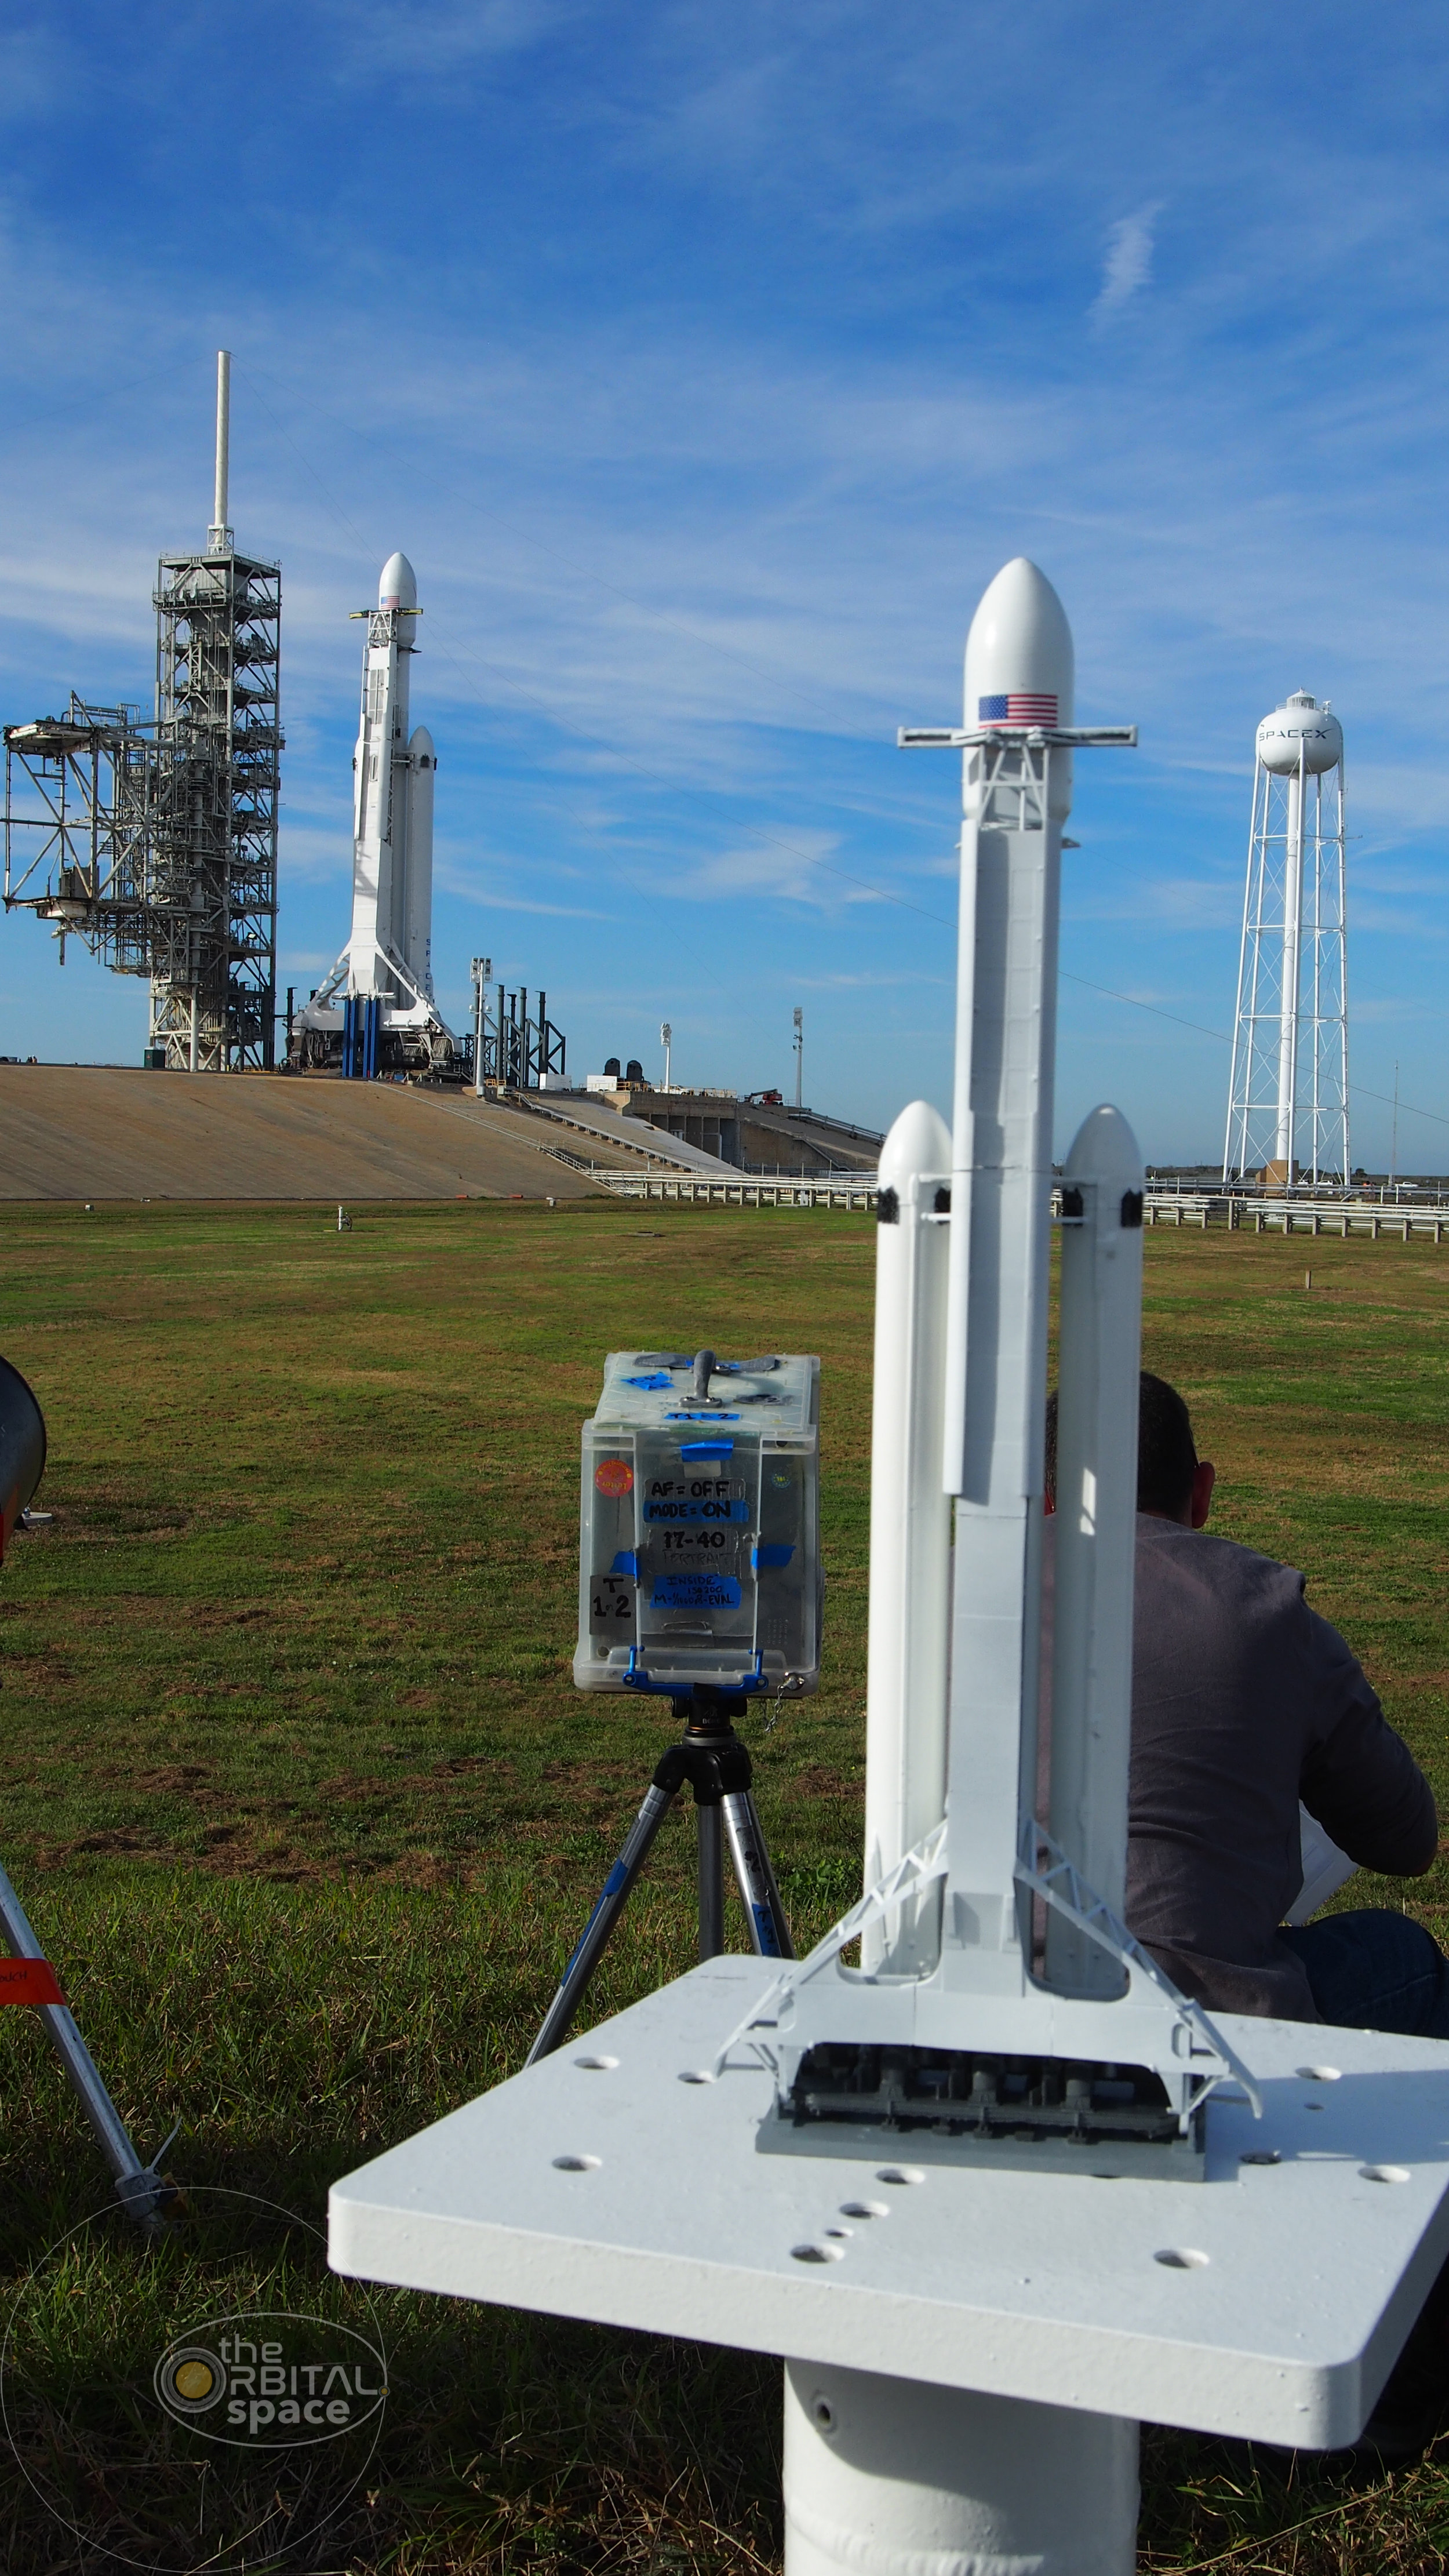 A model of SpaceX's Falcon Heavy seen with the real thing at LC-39A